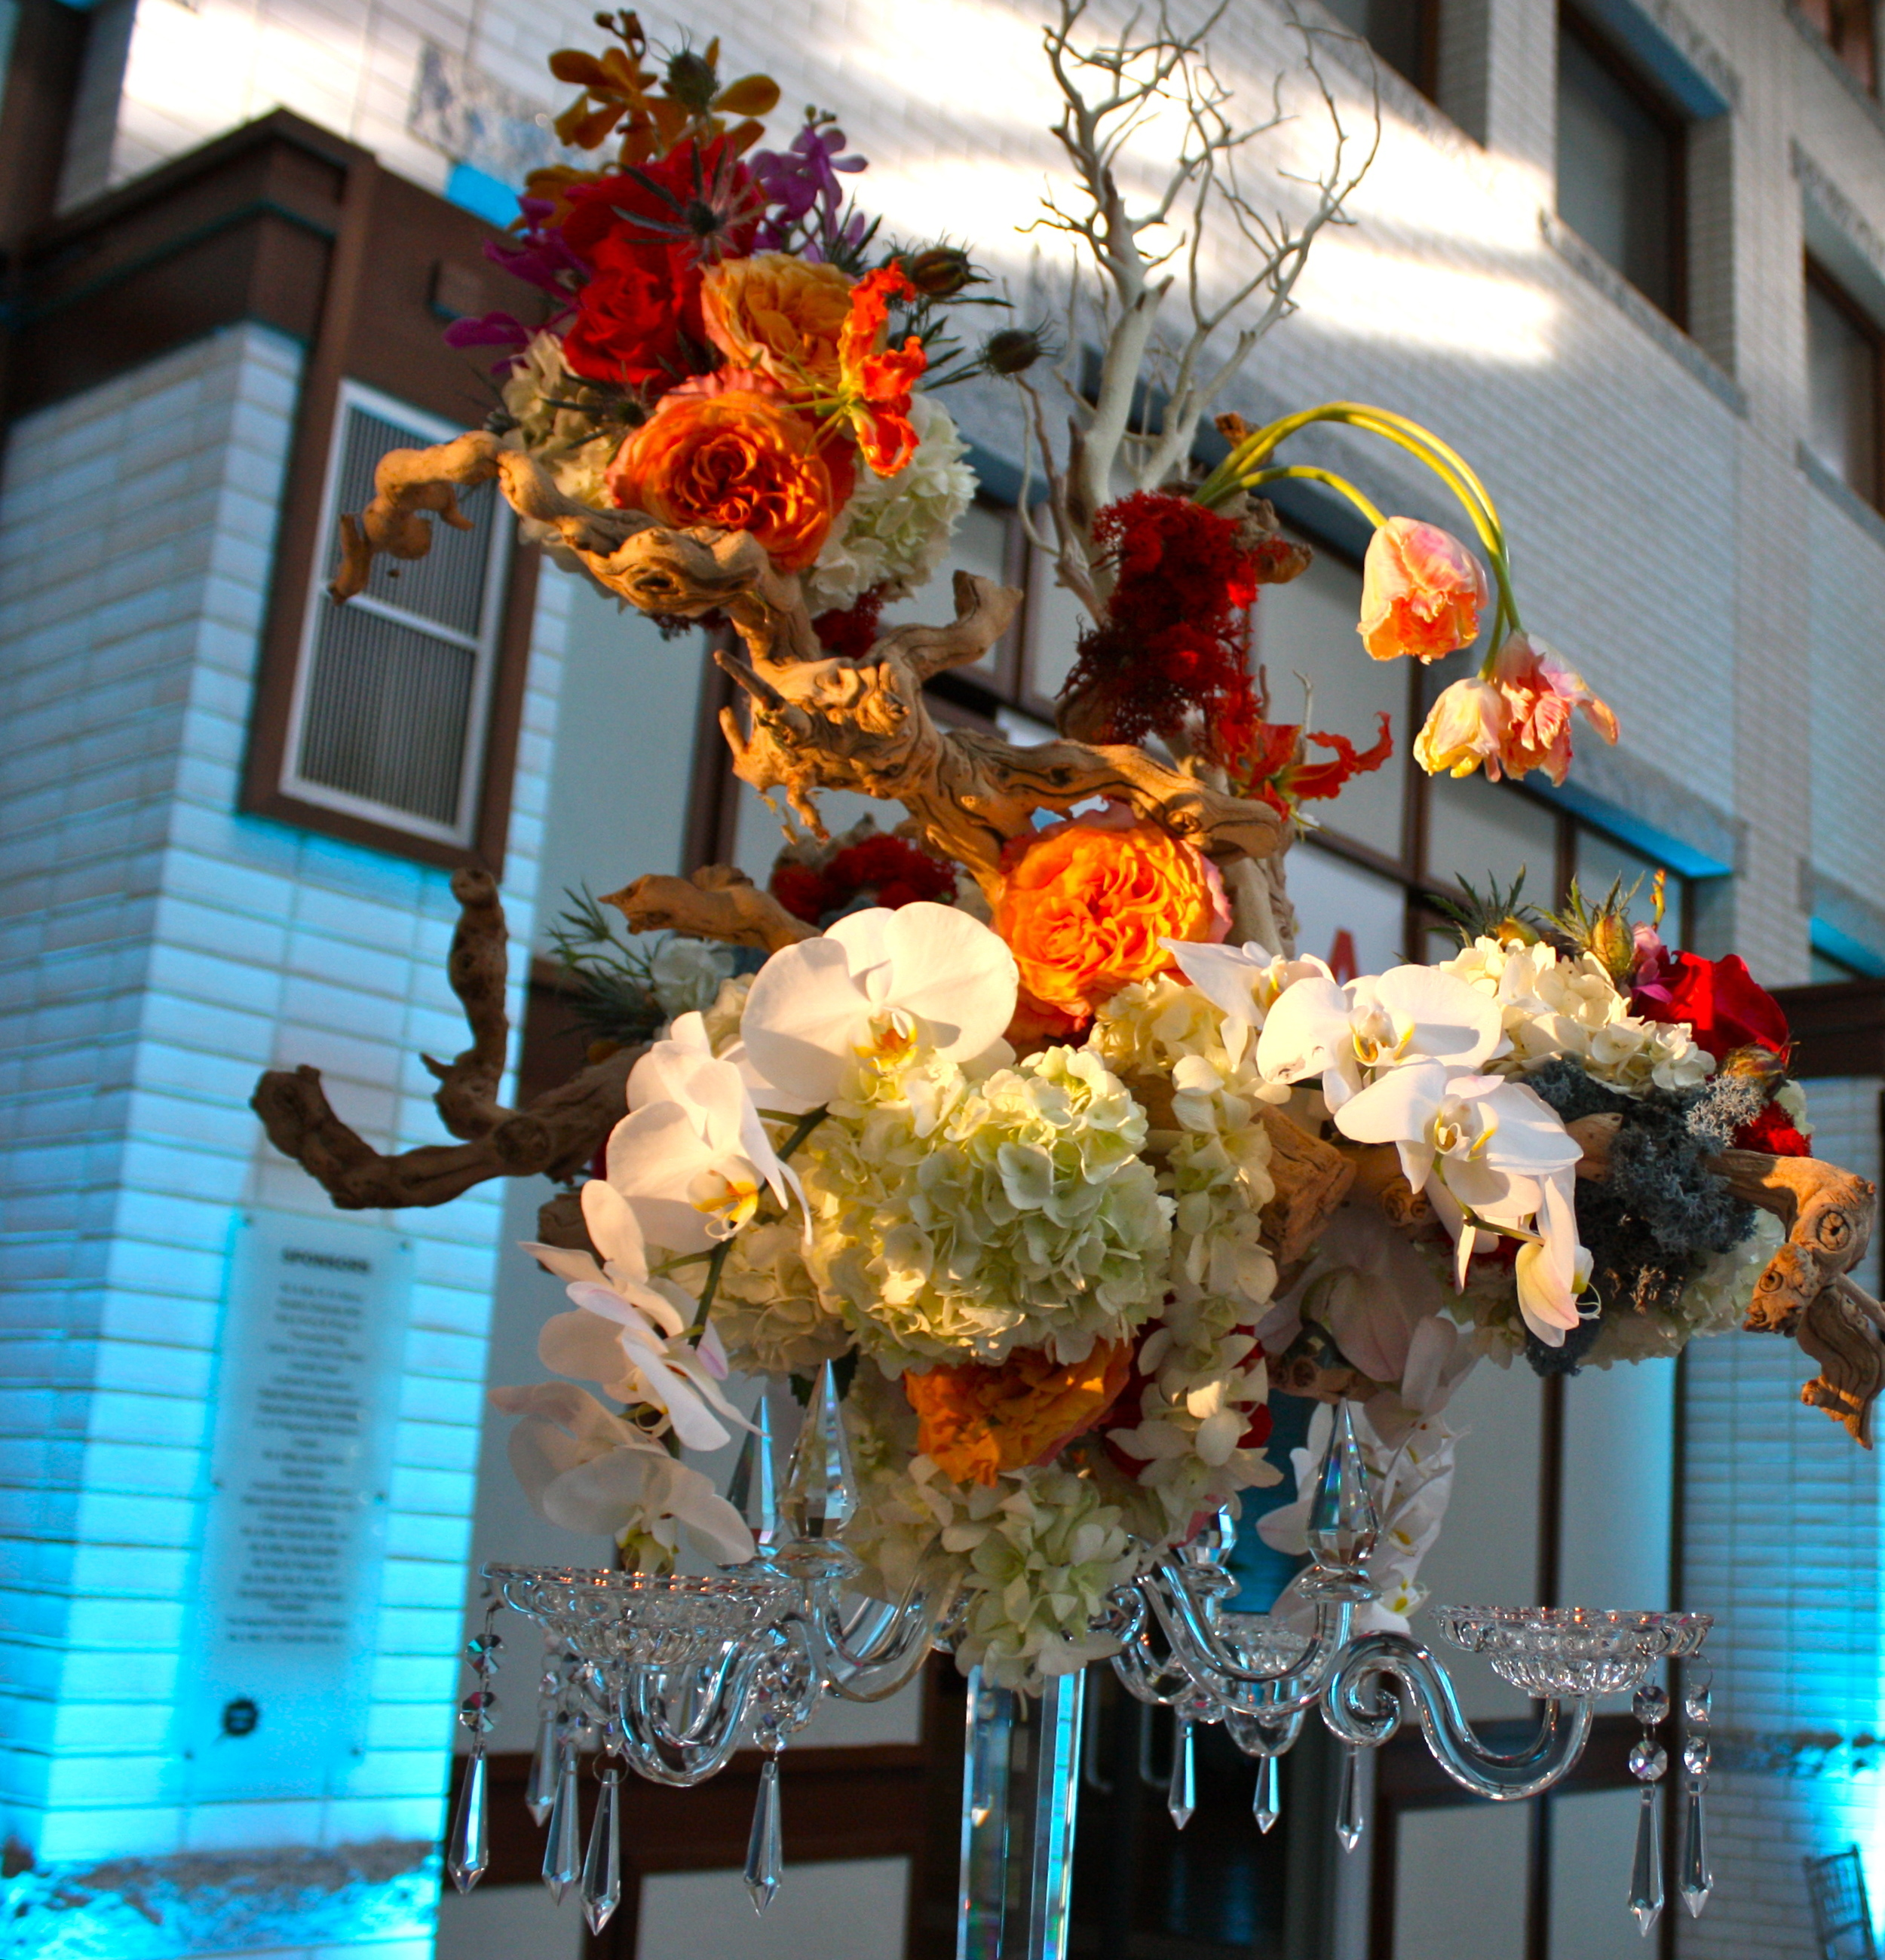 Large table centerpieces consisted of a crystal candelabra topped with grapewood branches covered in roses, hydrangeas, tulips, phalaenopsis orchids, gloriosa lilies, and moss.